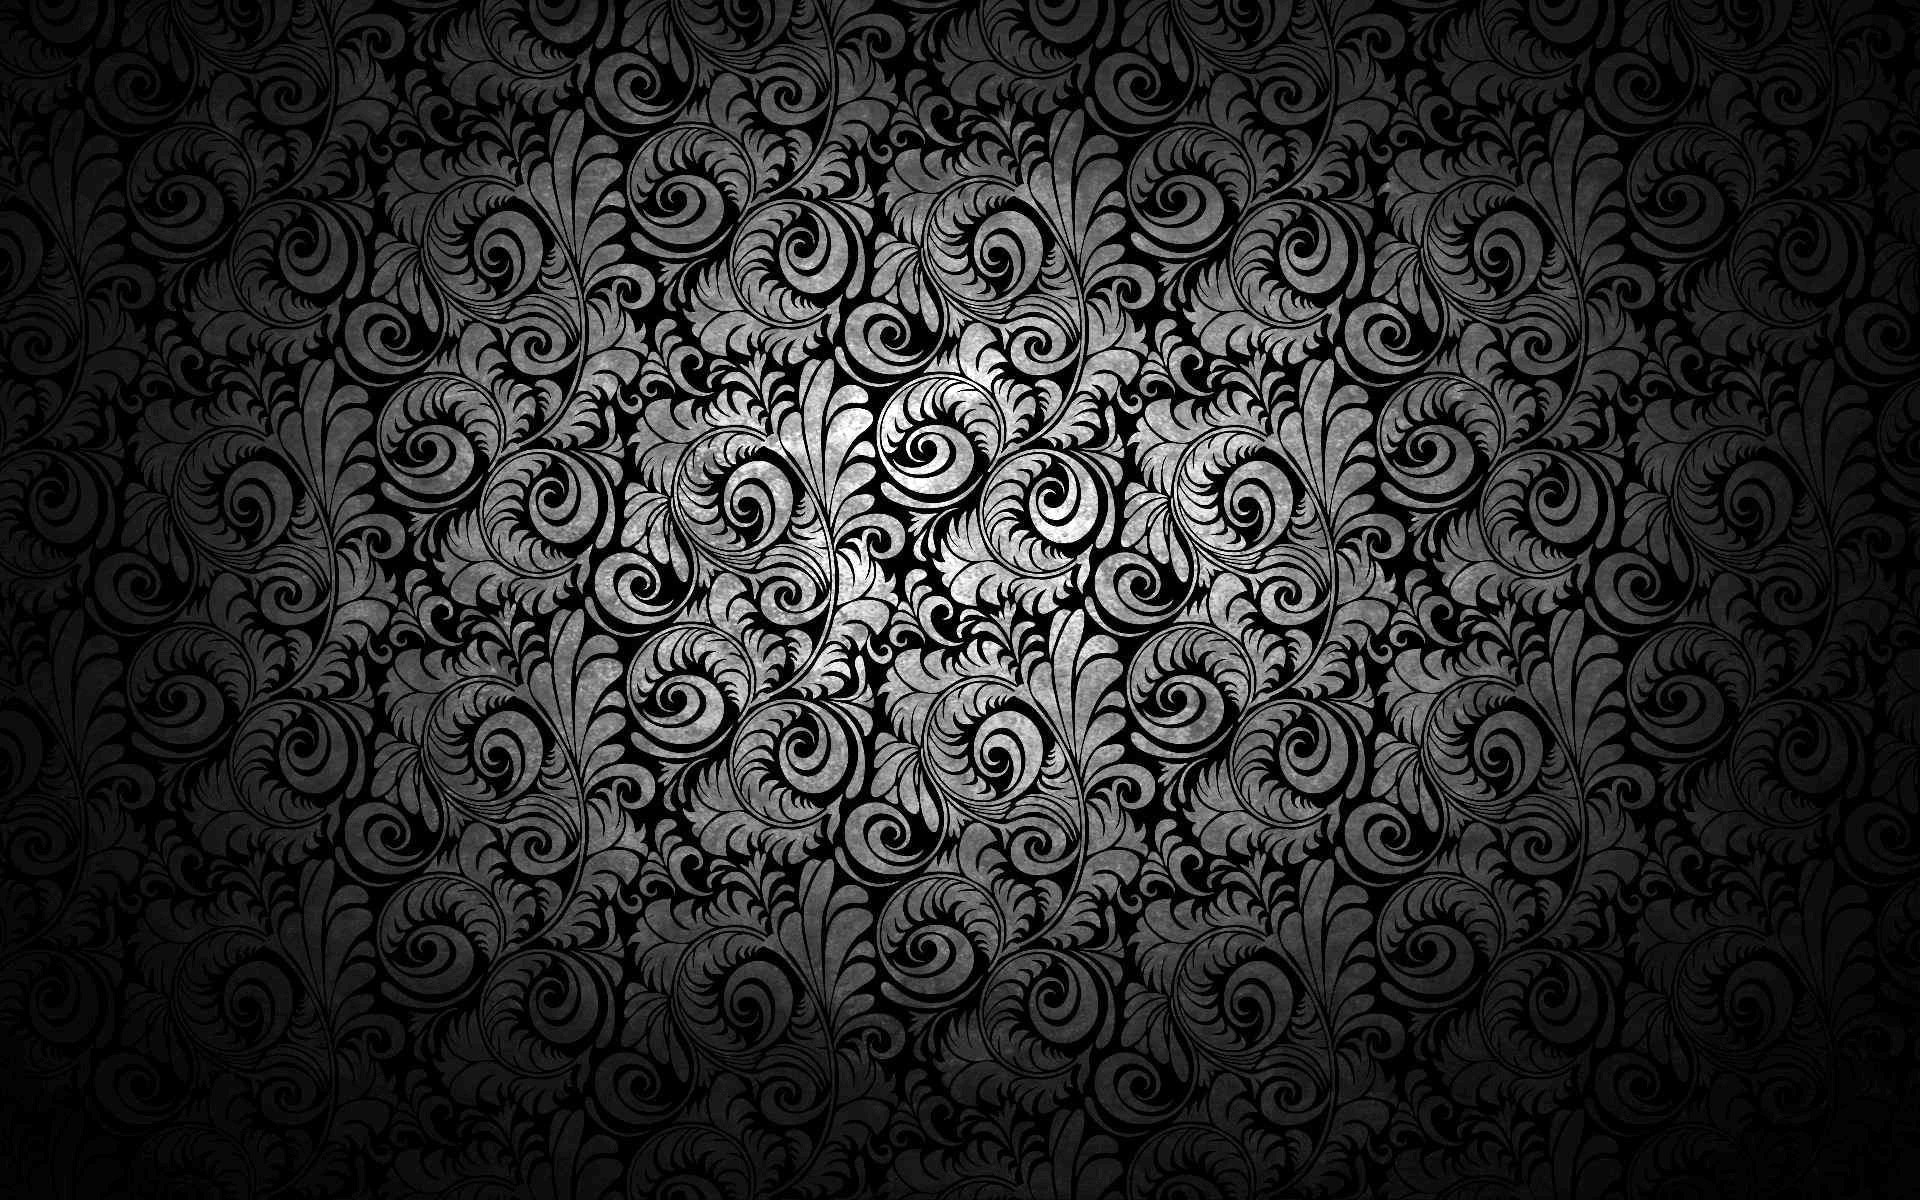 Abstract Hd Wallpapers 1080p8